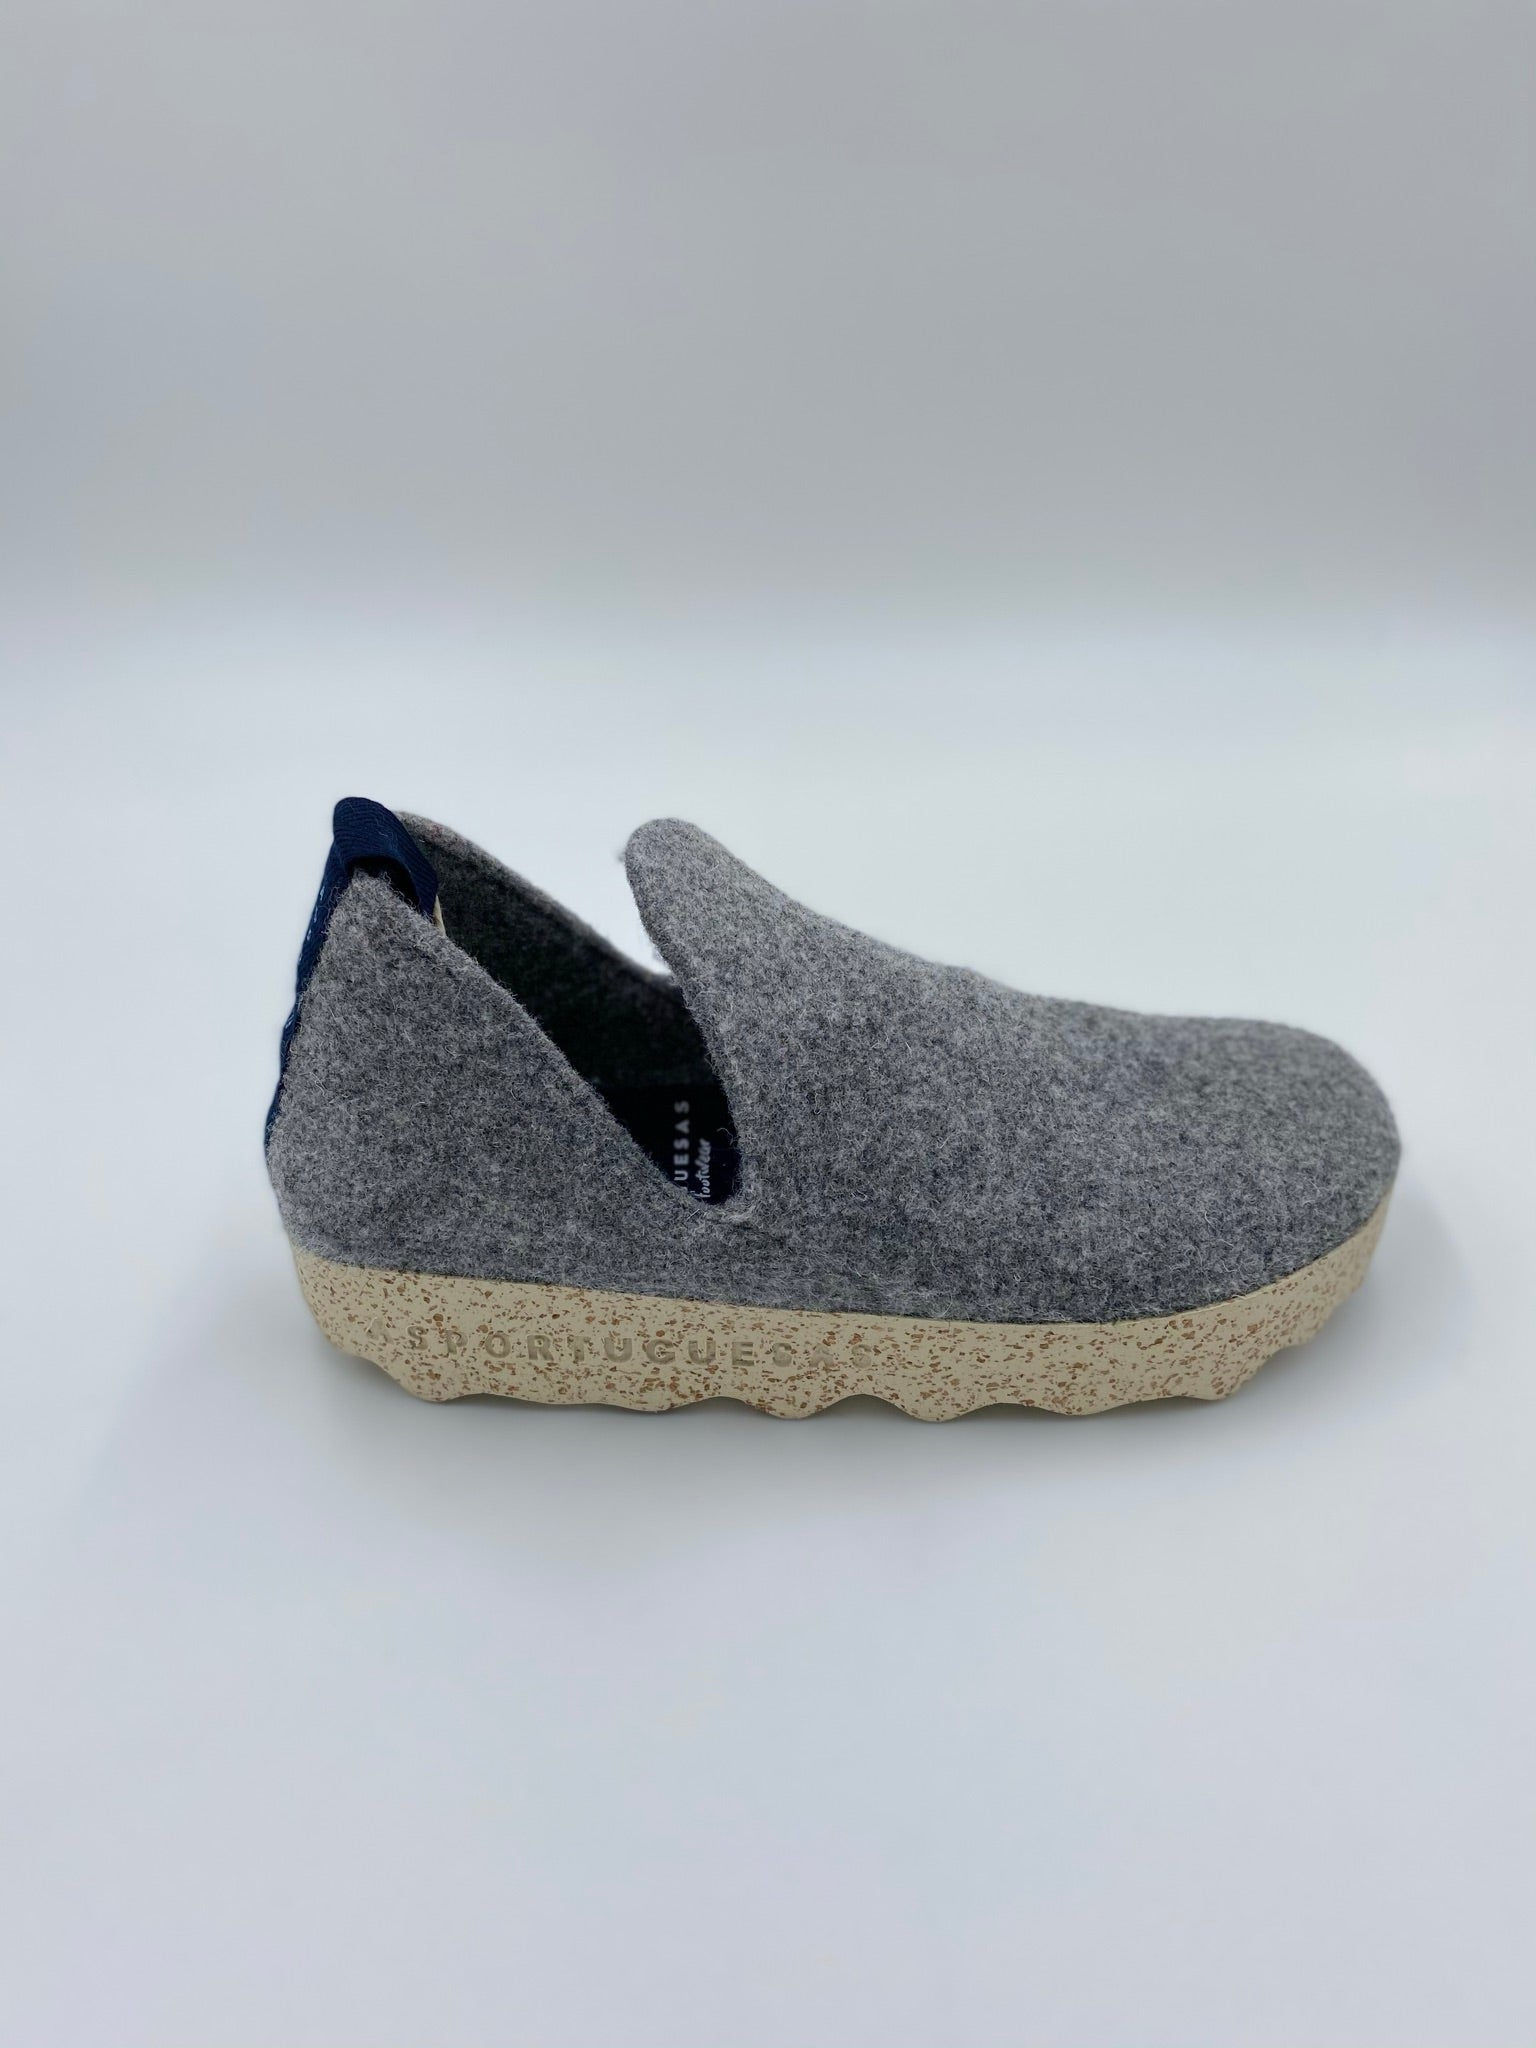 Asportuguesas Uldsko City concreed tweed